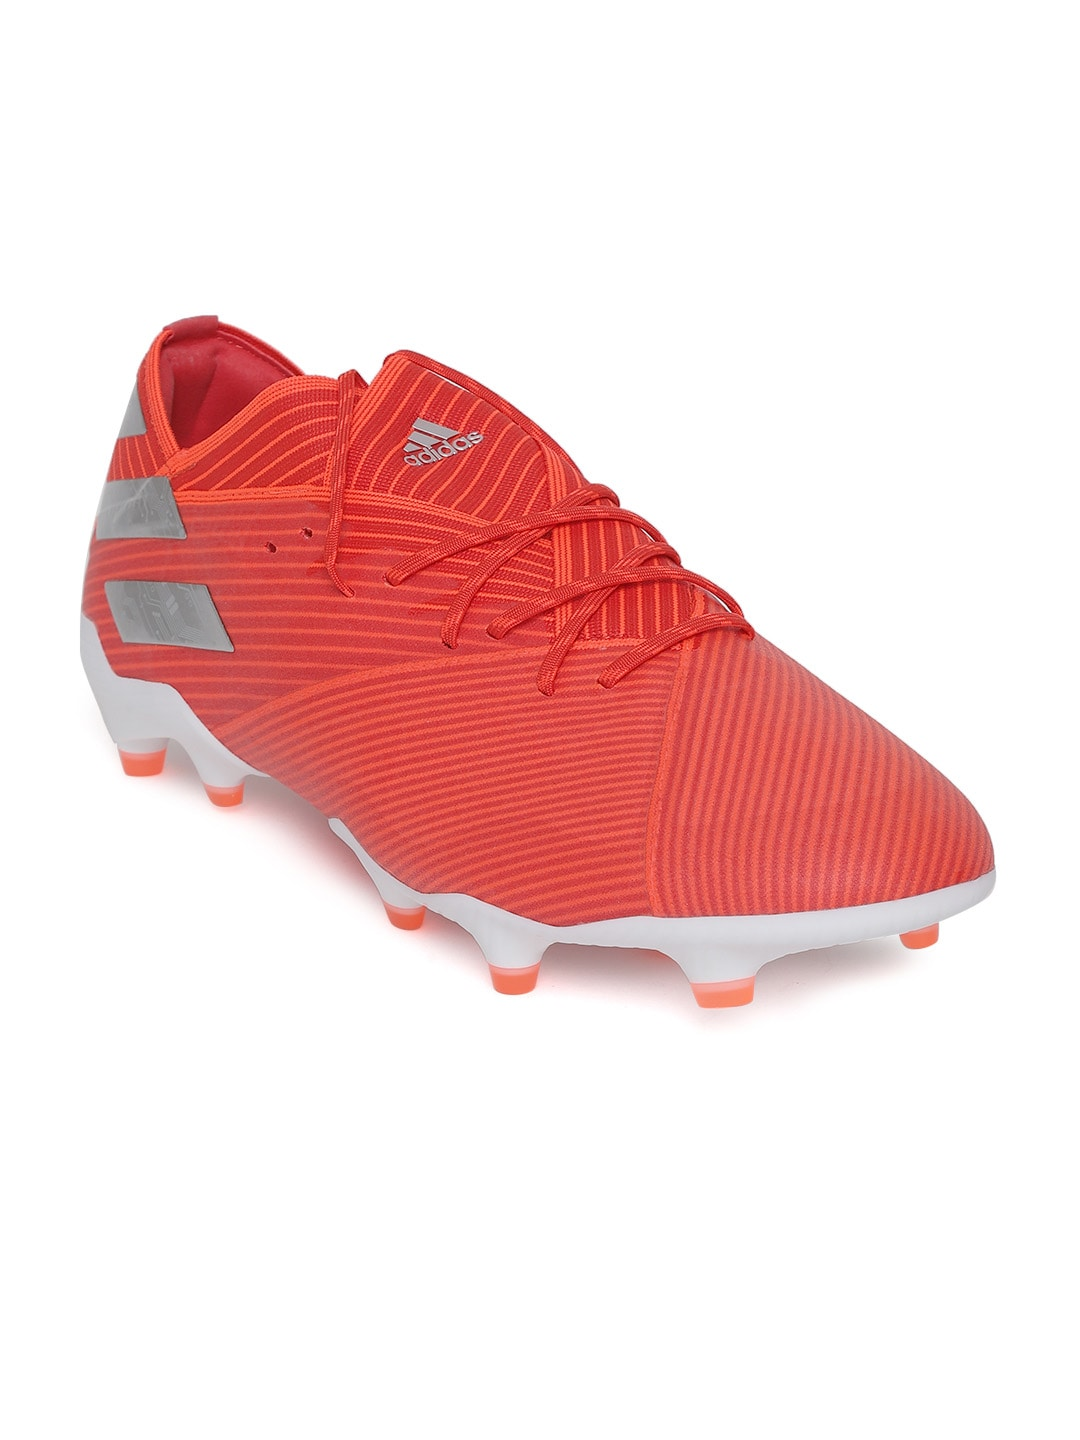 731614e2d3d Adidas Football Shoes - Buy Adidas Football Shoes for Men Online in India